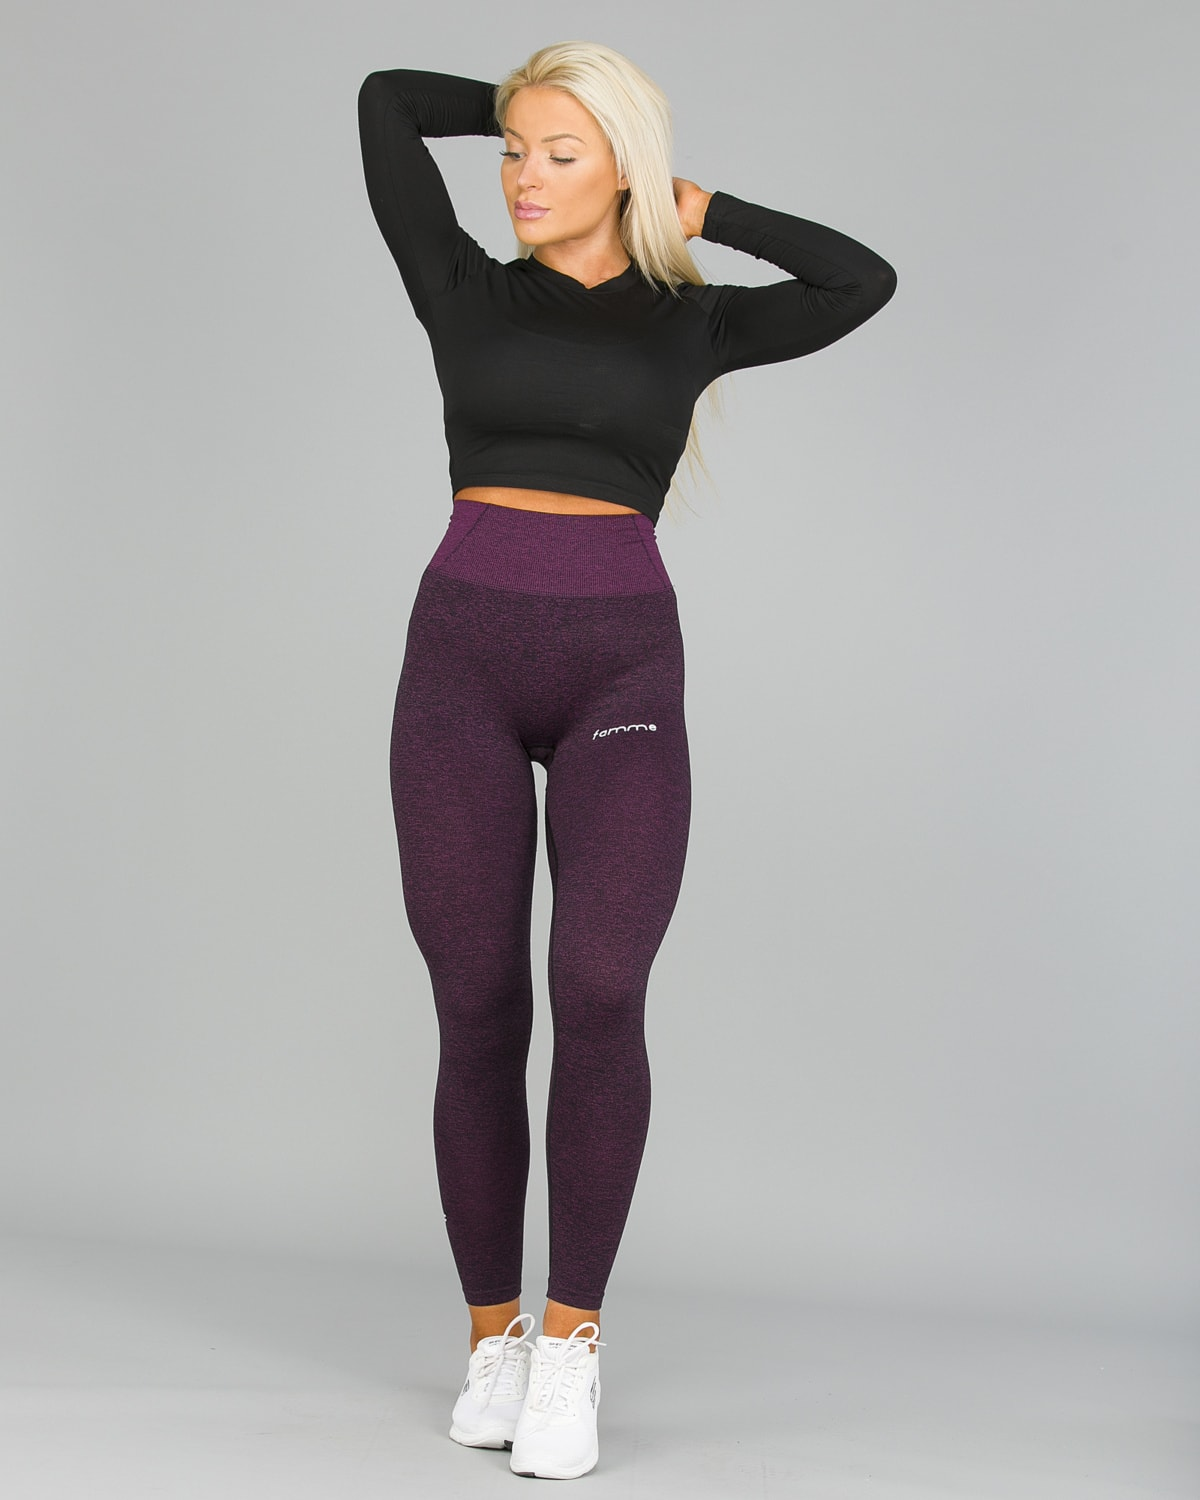 FAMME Lavender Seamless Essential Tights6